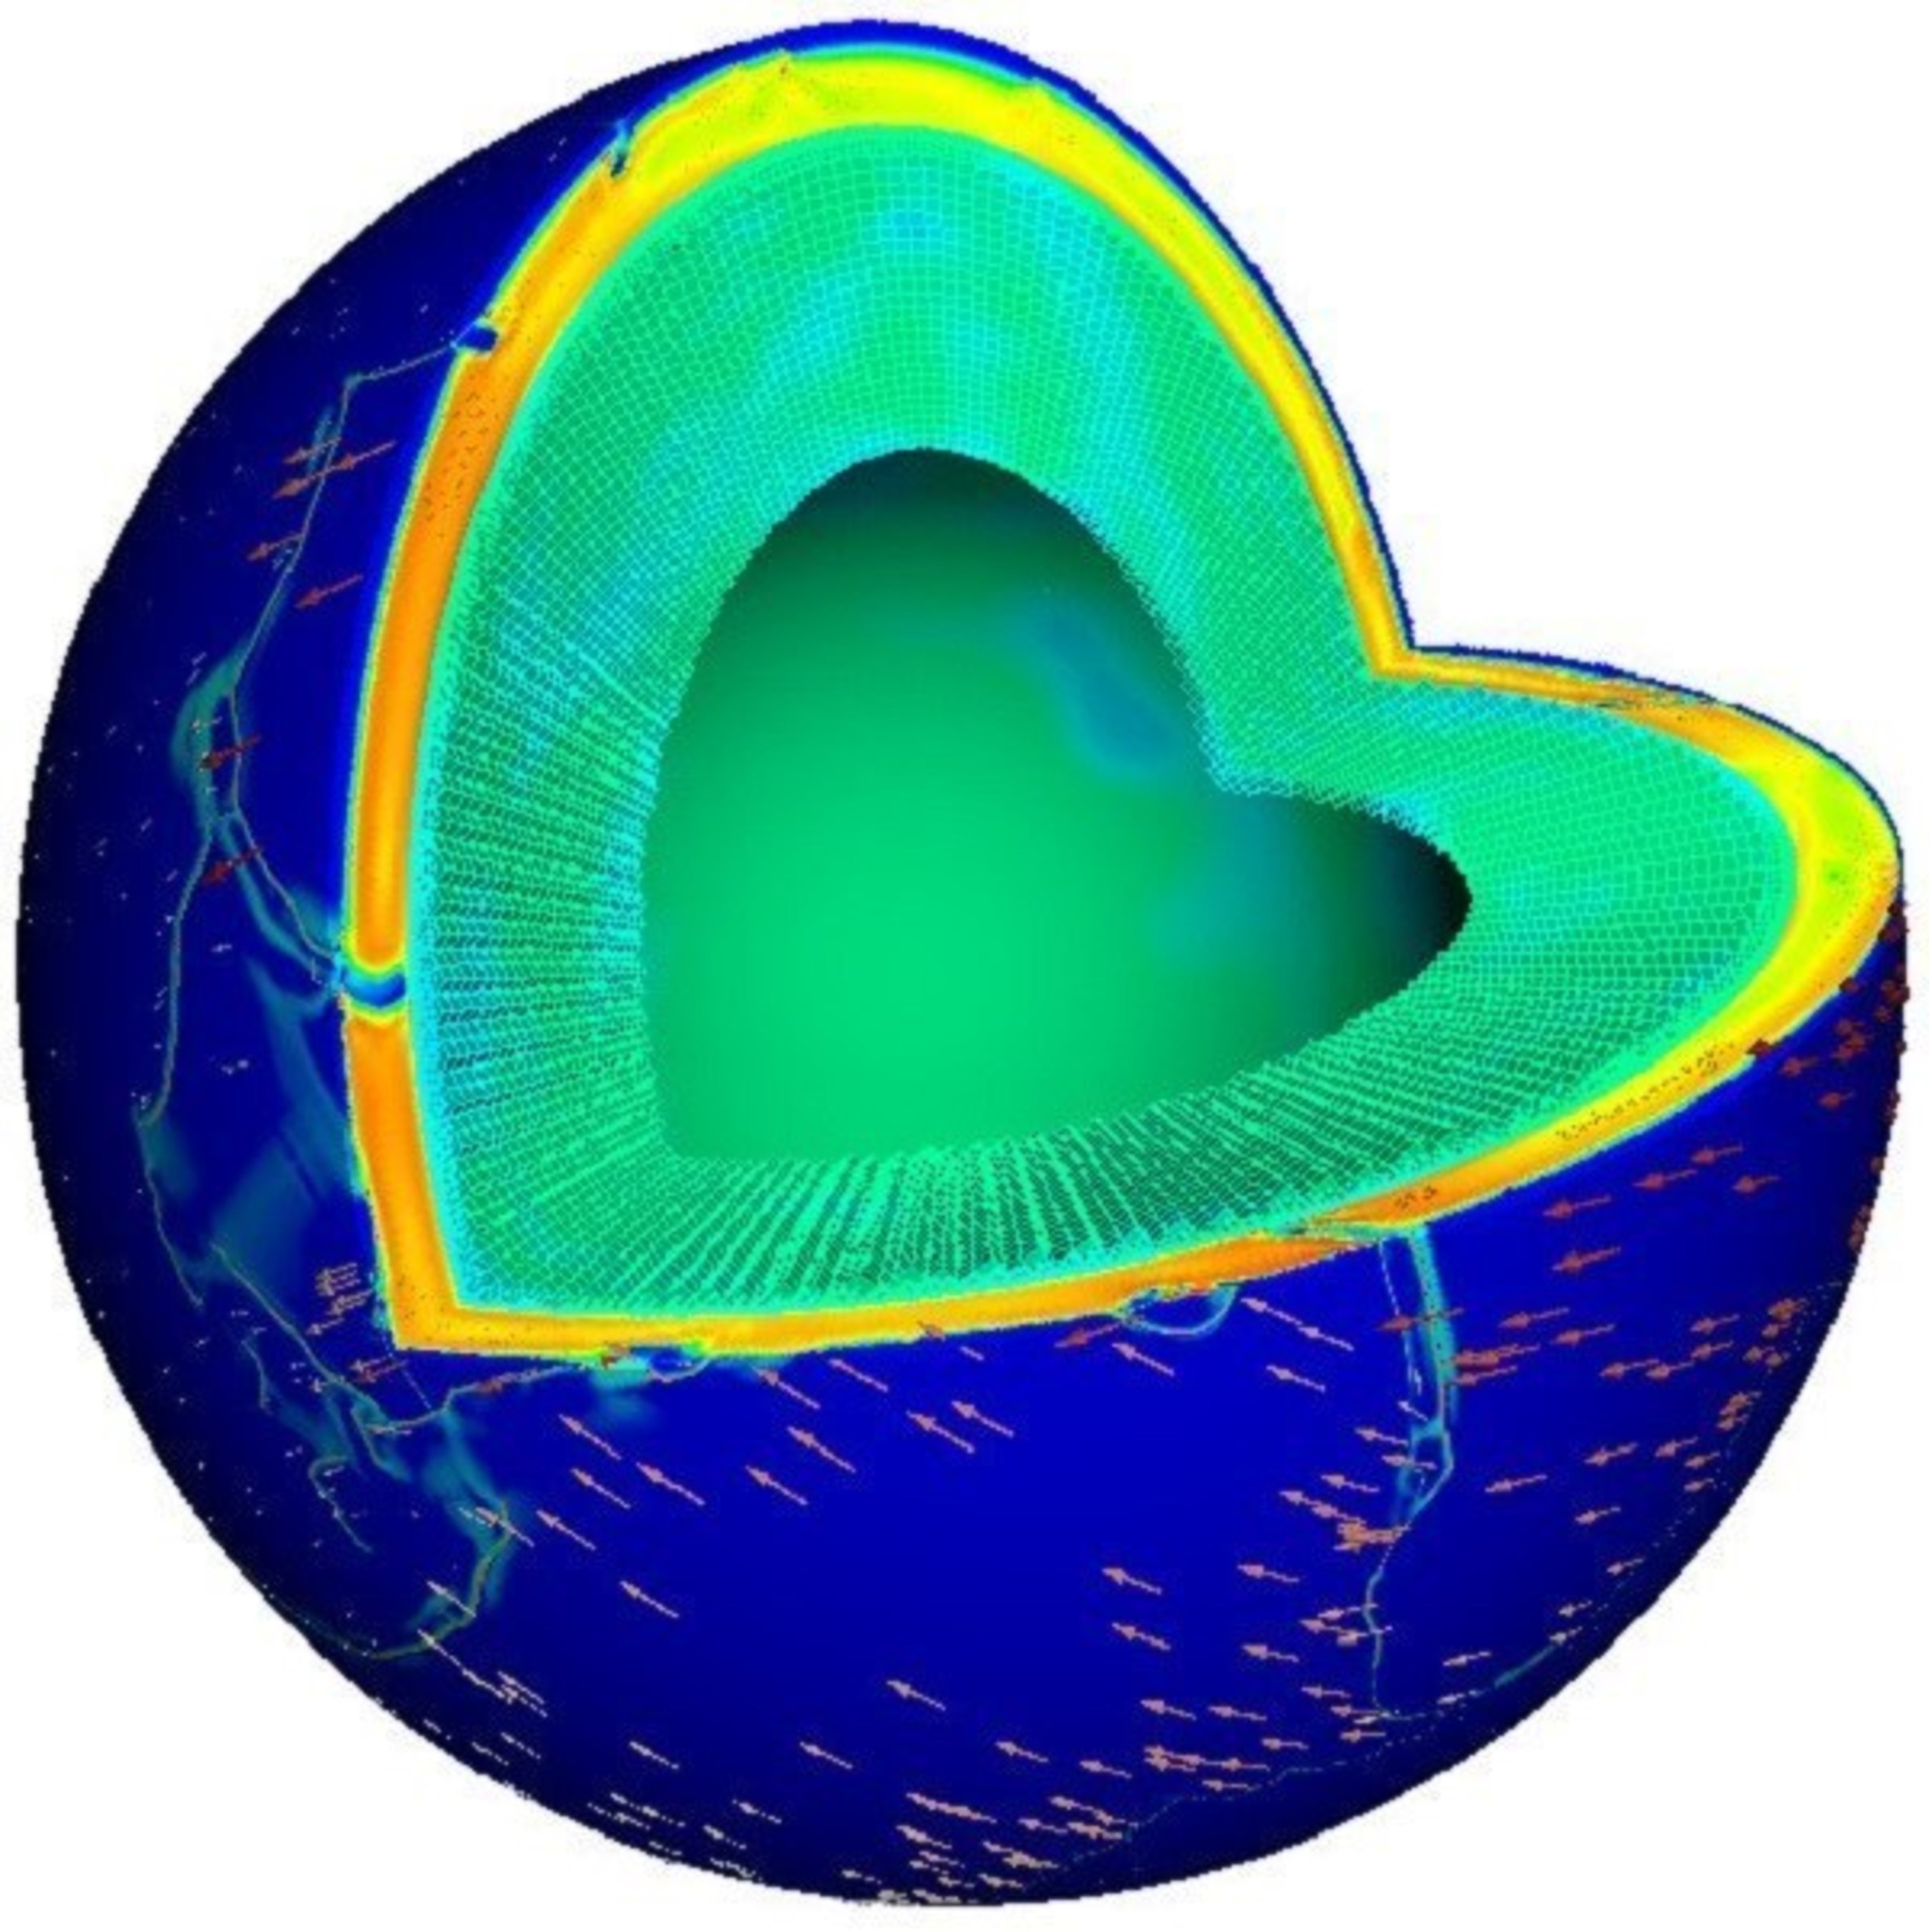 """Scientists at IBM Research, the University of Texas at Austin, New York University and the California Institute of Technology have been awarded the 2015 Gordon Bell Prize for realistically simulating the forces inside the Earth that drive plate tectonics. The work paves the way toward better understanding of earthquakes and volcanic activity. The accomplishment was made using 1.6 million cores on the 96 racks of """"Sequoia"""" - the IBM BlueGene/Q system located at the Lawrence Livermore National Laboratory, one of the world's fastest supercomputers. The illustration depicts the mantle viscosity and the arrows show the motion of the tectonic plates."""